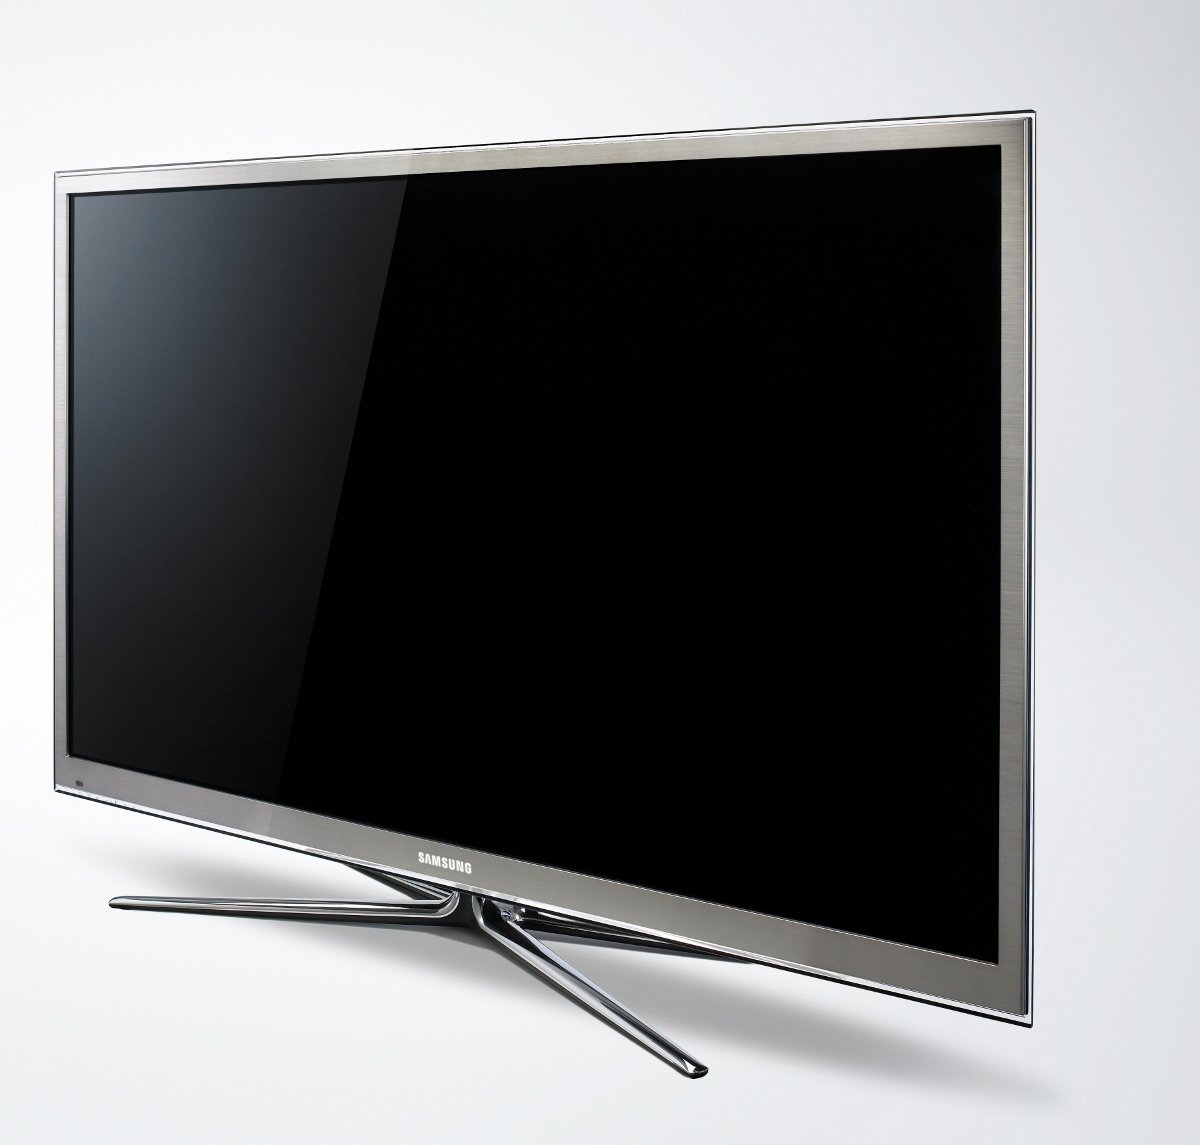 samsung led tv schematic diagrams. Black Bedroom Furniture Sets. Home Design Ideas